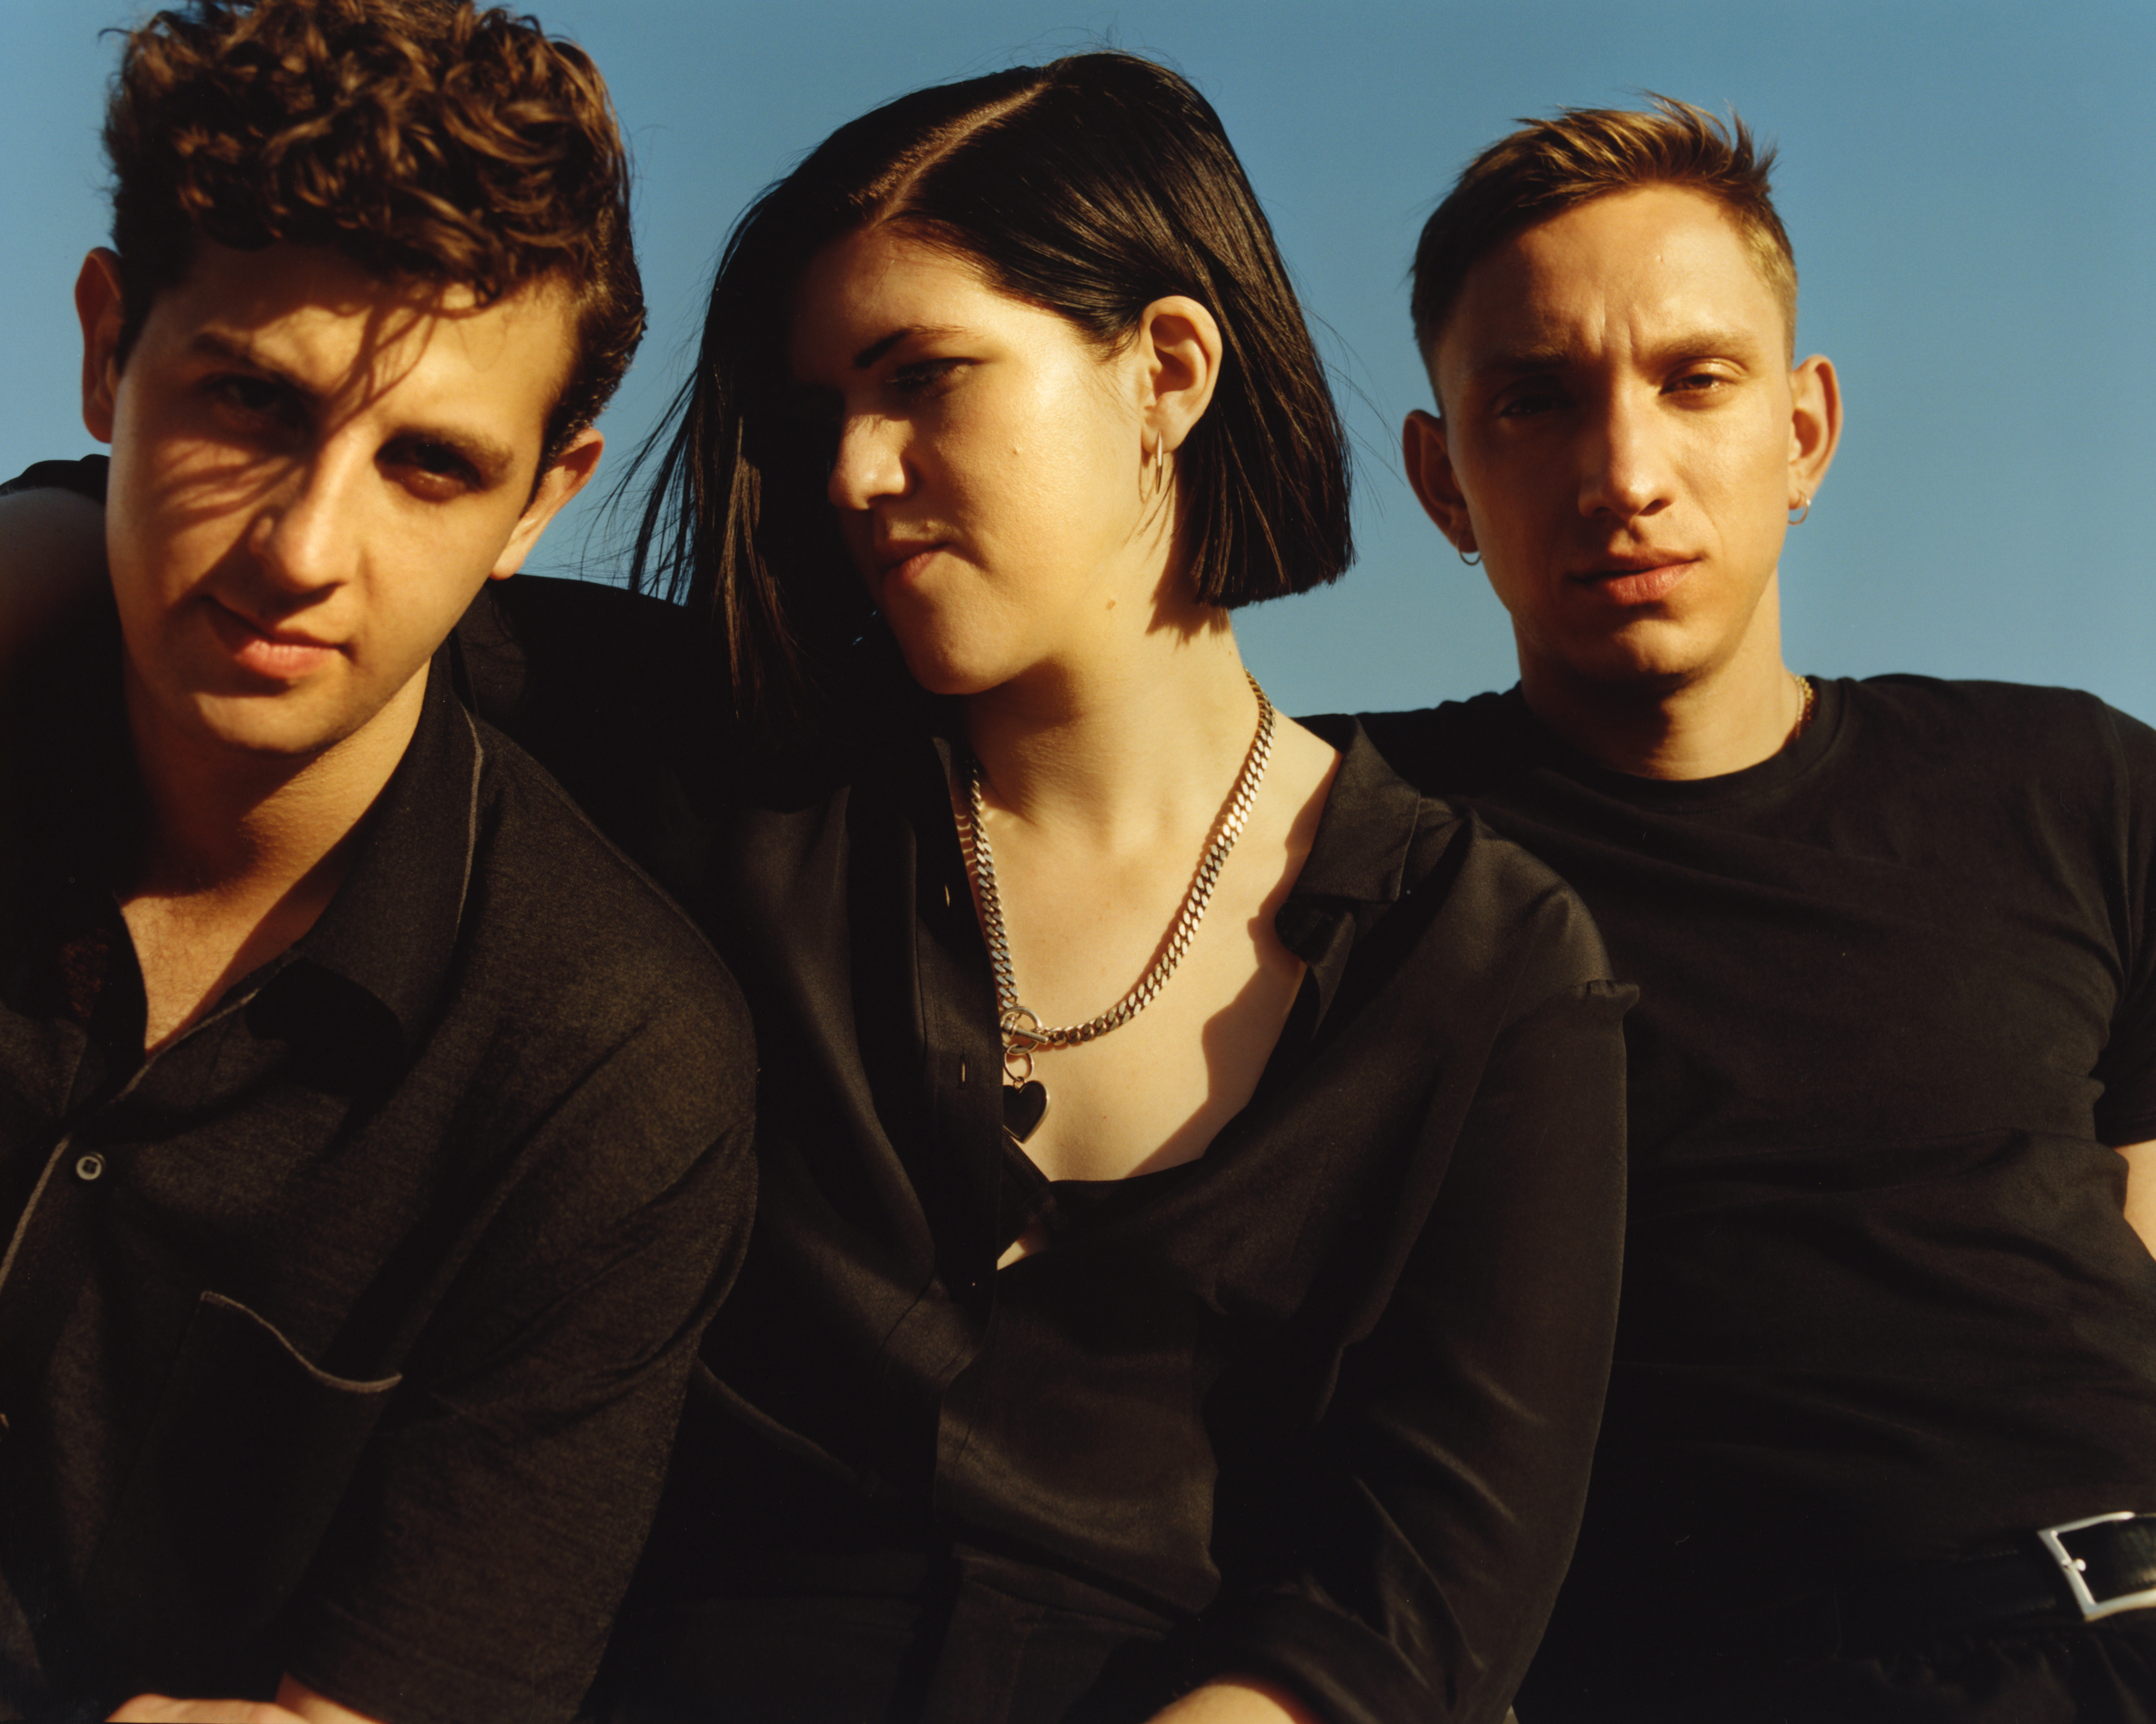 Upfront Arena Presents THE xx IN KUALA LUMPUR JANUARY 25 2018